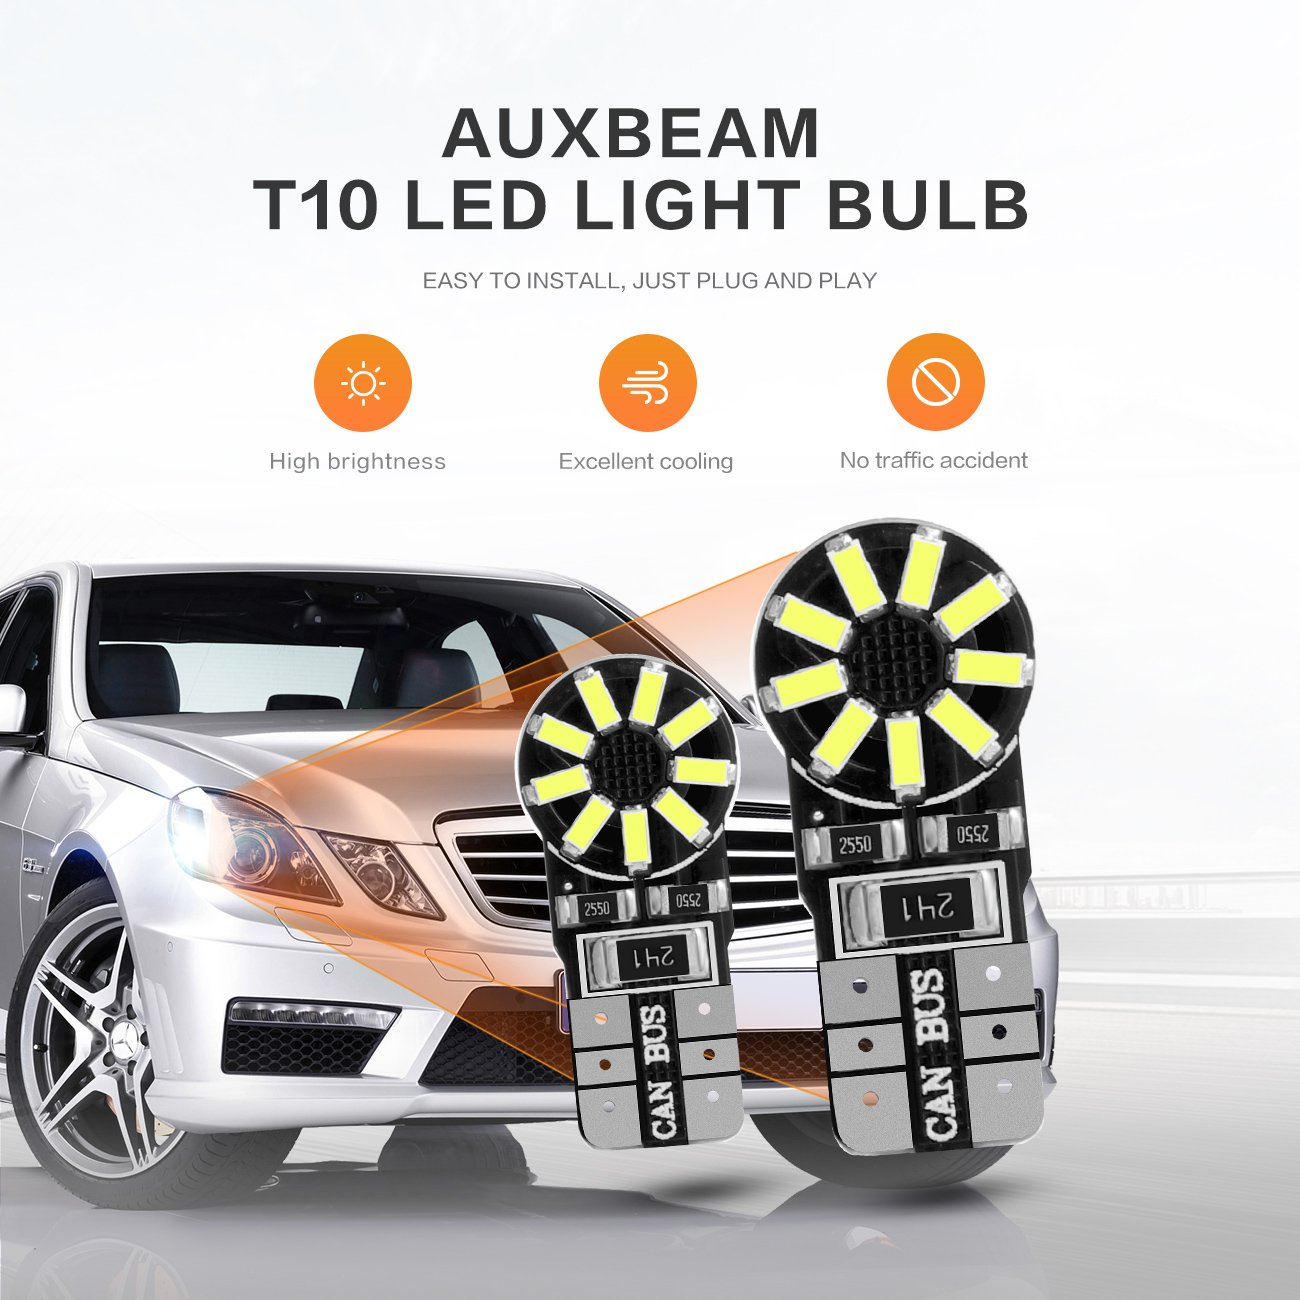 Auxbeam LED 9005 HB3 Headlight Bulbs build in Turbo Fan 2 Year Warranty F-16 Series 6000K White 2 Pcs of LED Conversion Kits Replacement Fog Lights Headlights Halogen Bulbs